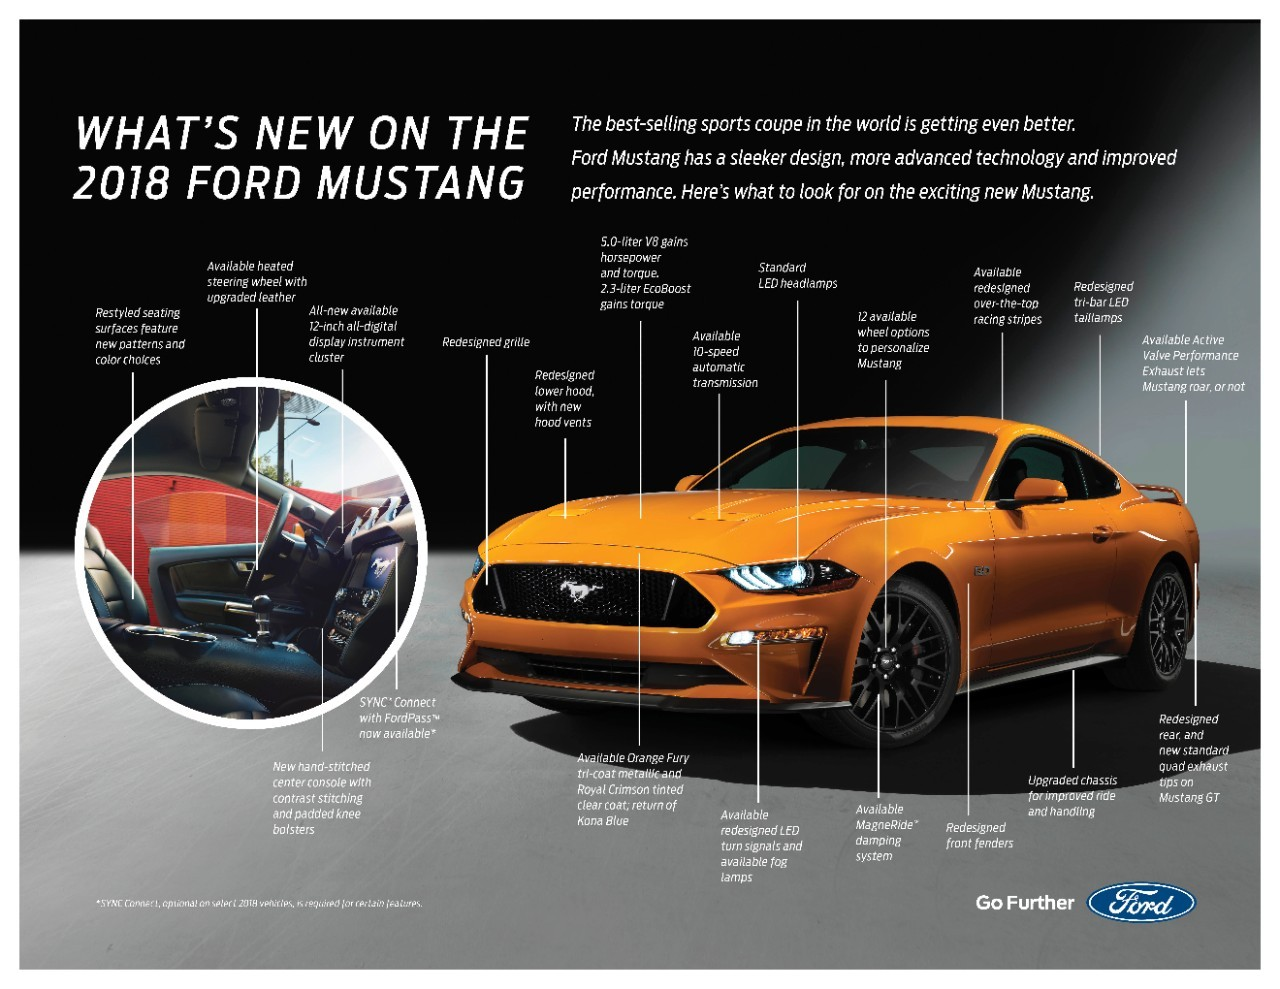 Euro-spec 2018 Ford Mustang Detailed, 12